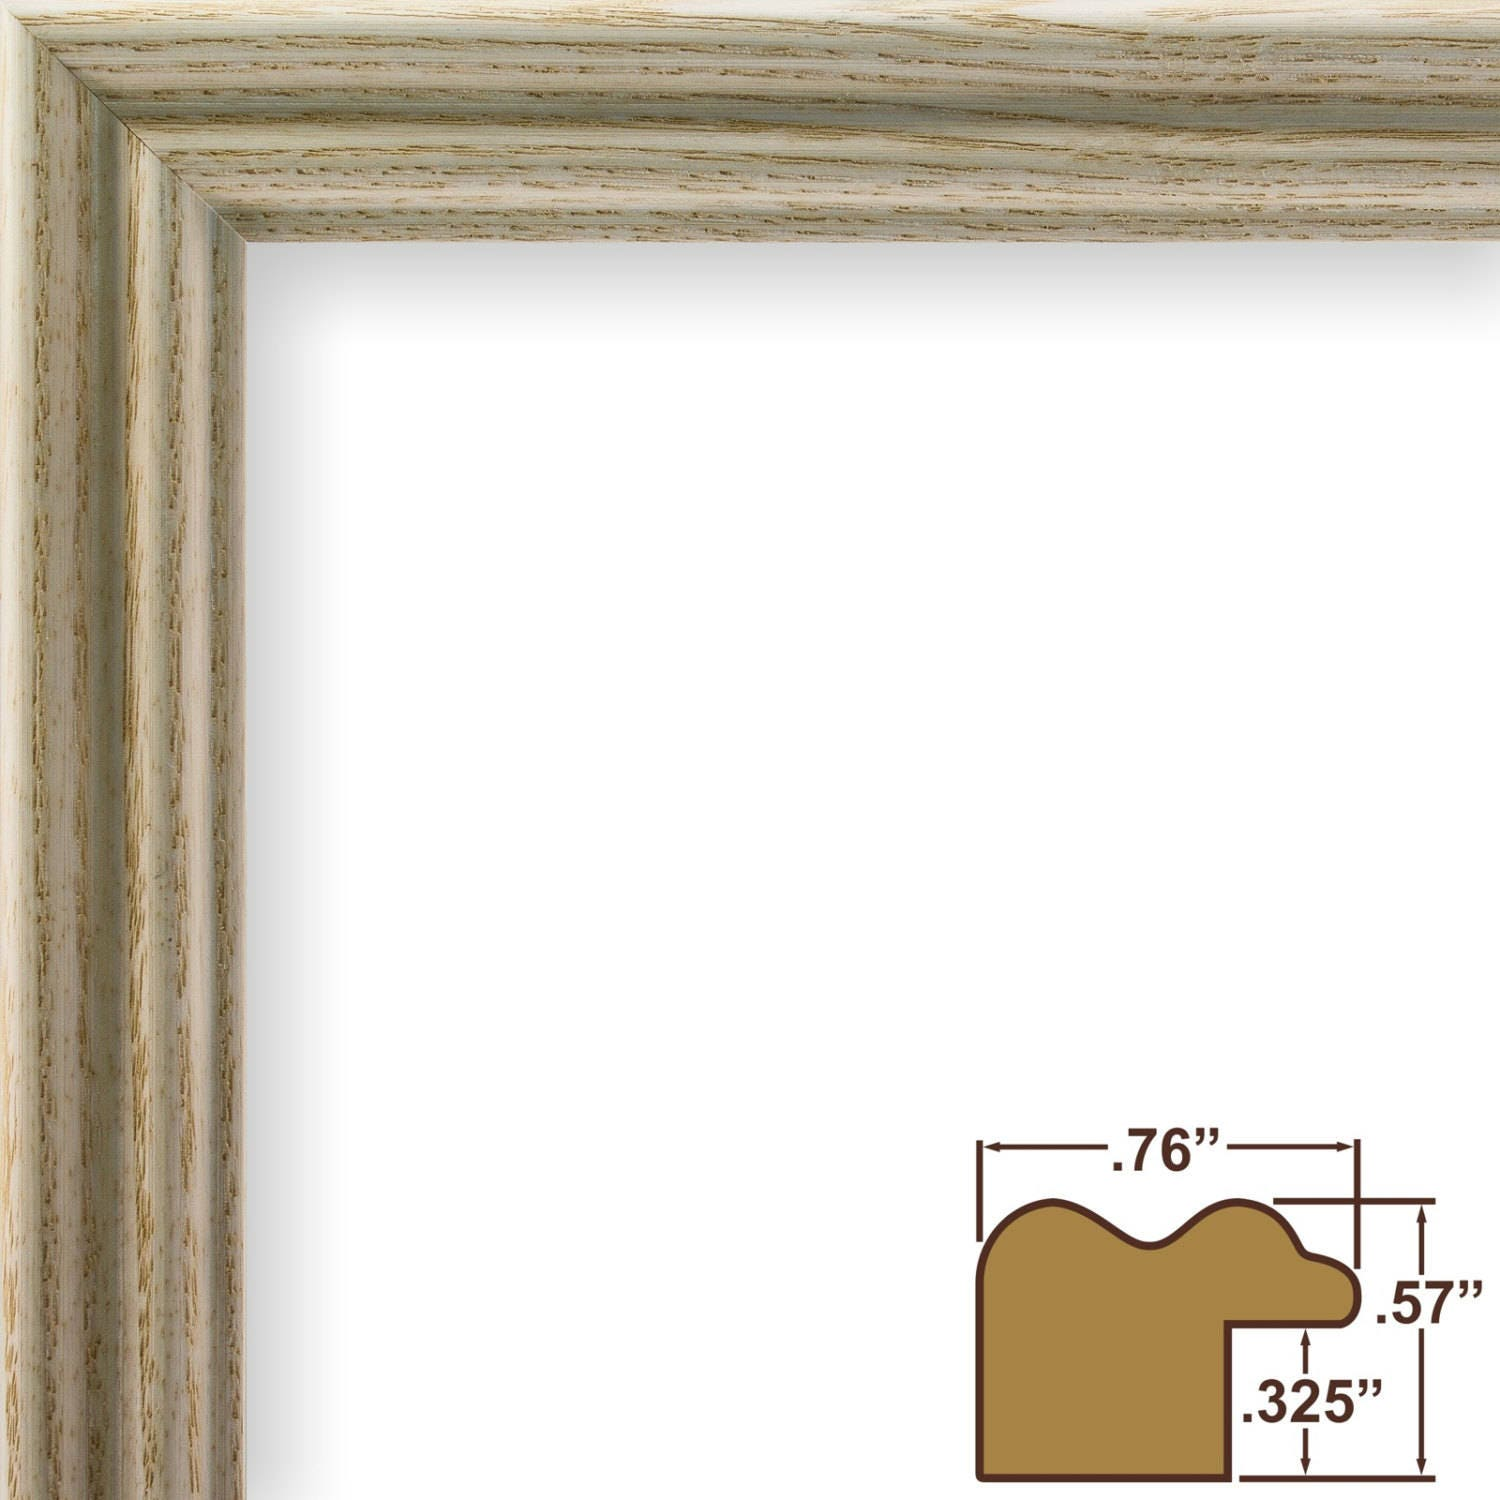 Craig frames 20x20 inch whitewash picture frame wiltshire 200 sold by craigframes jeuxipadfo Image collections